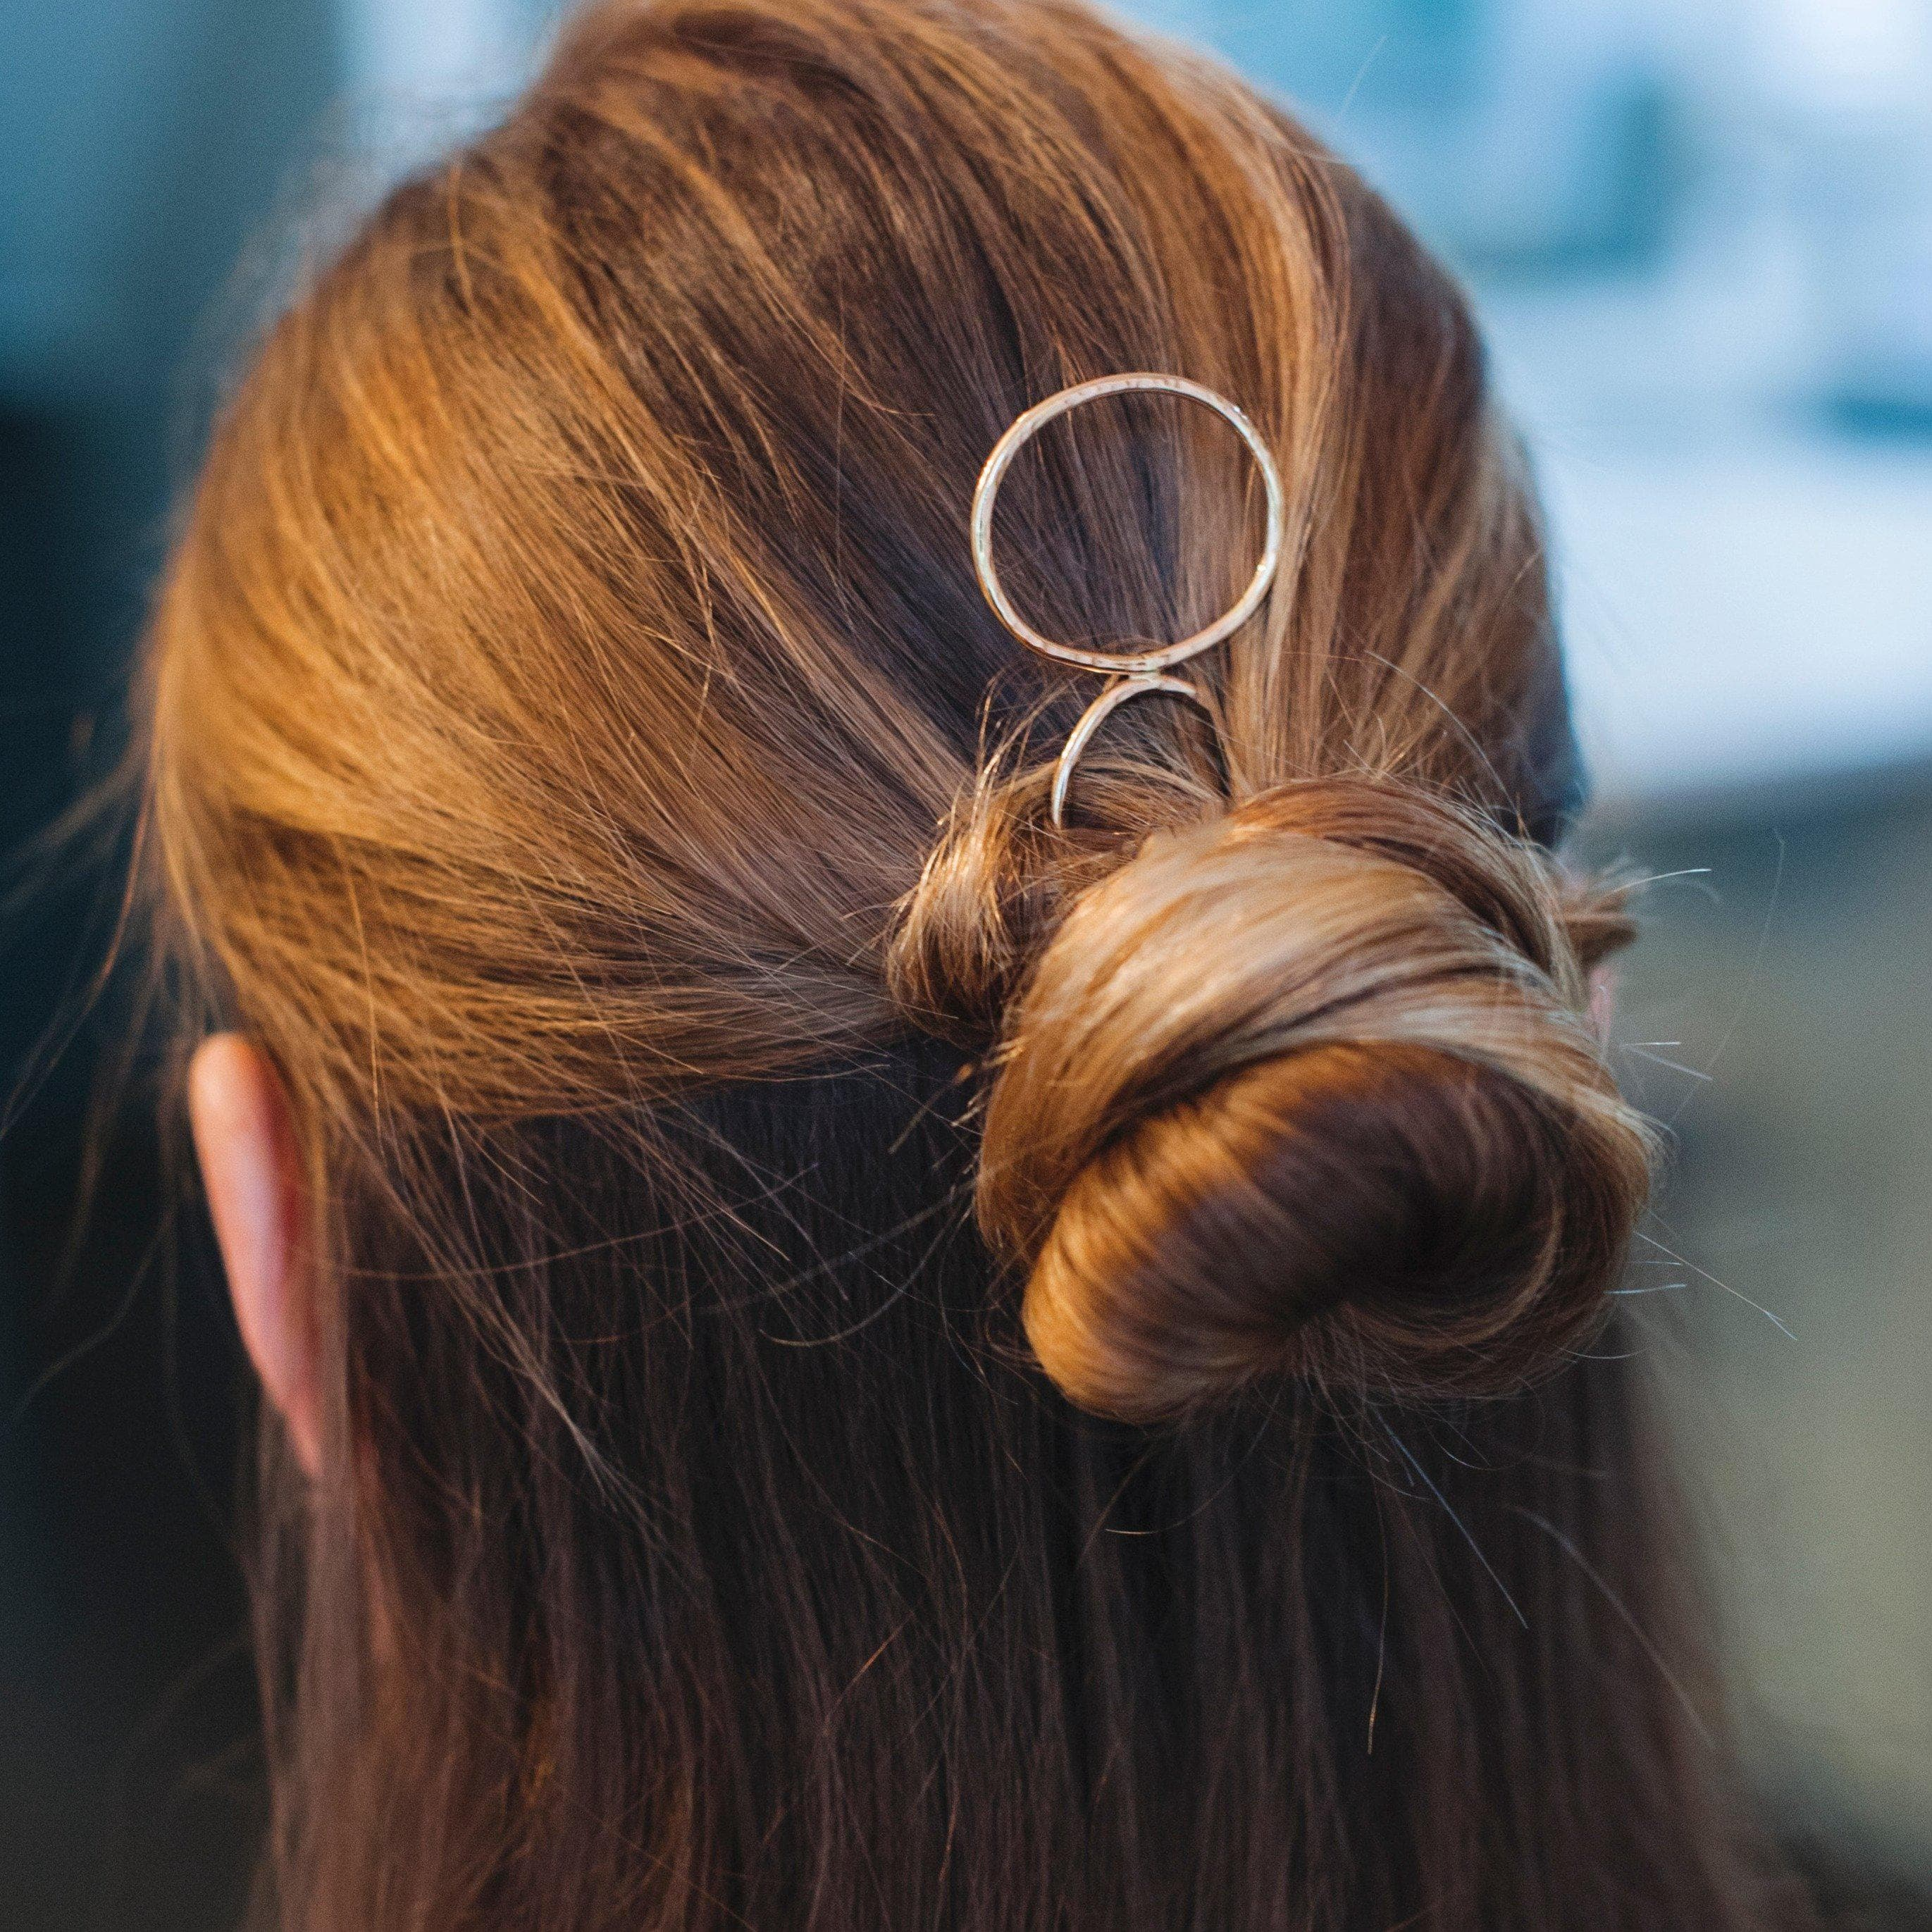 Oval Hair Pin